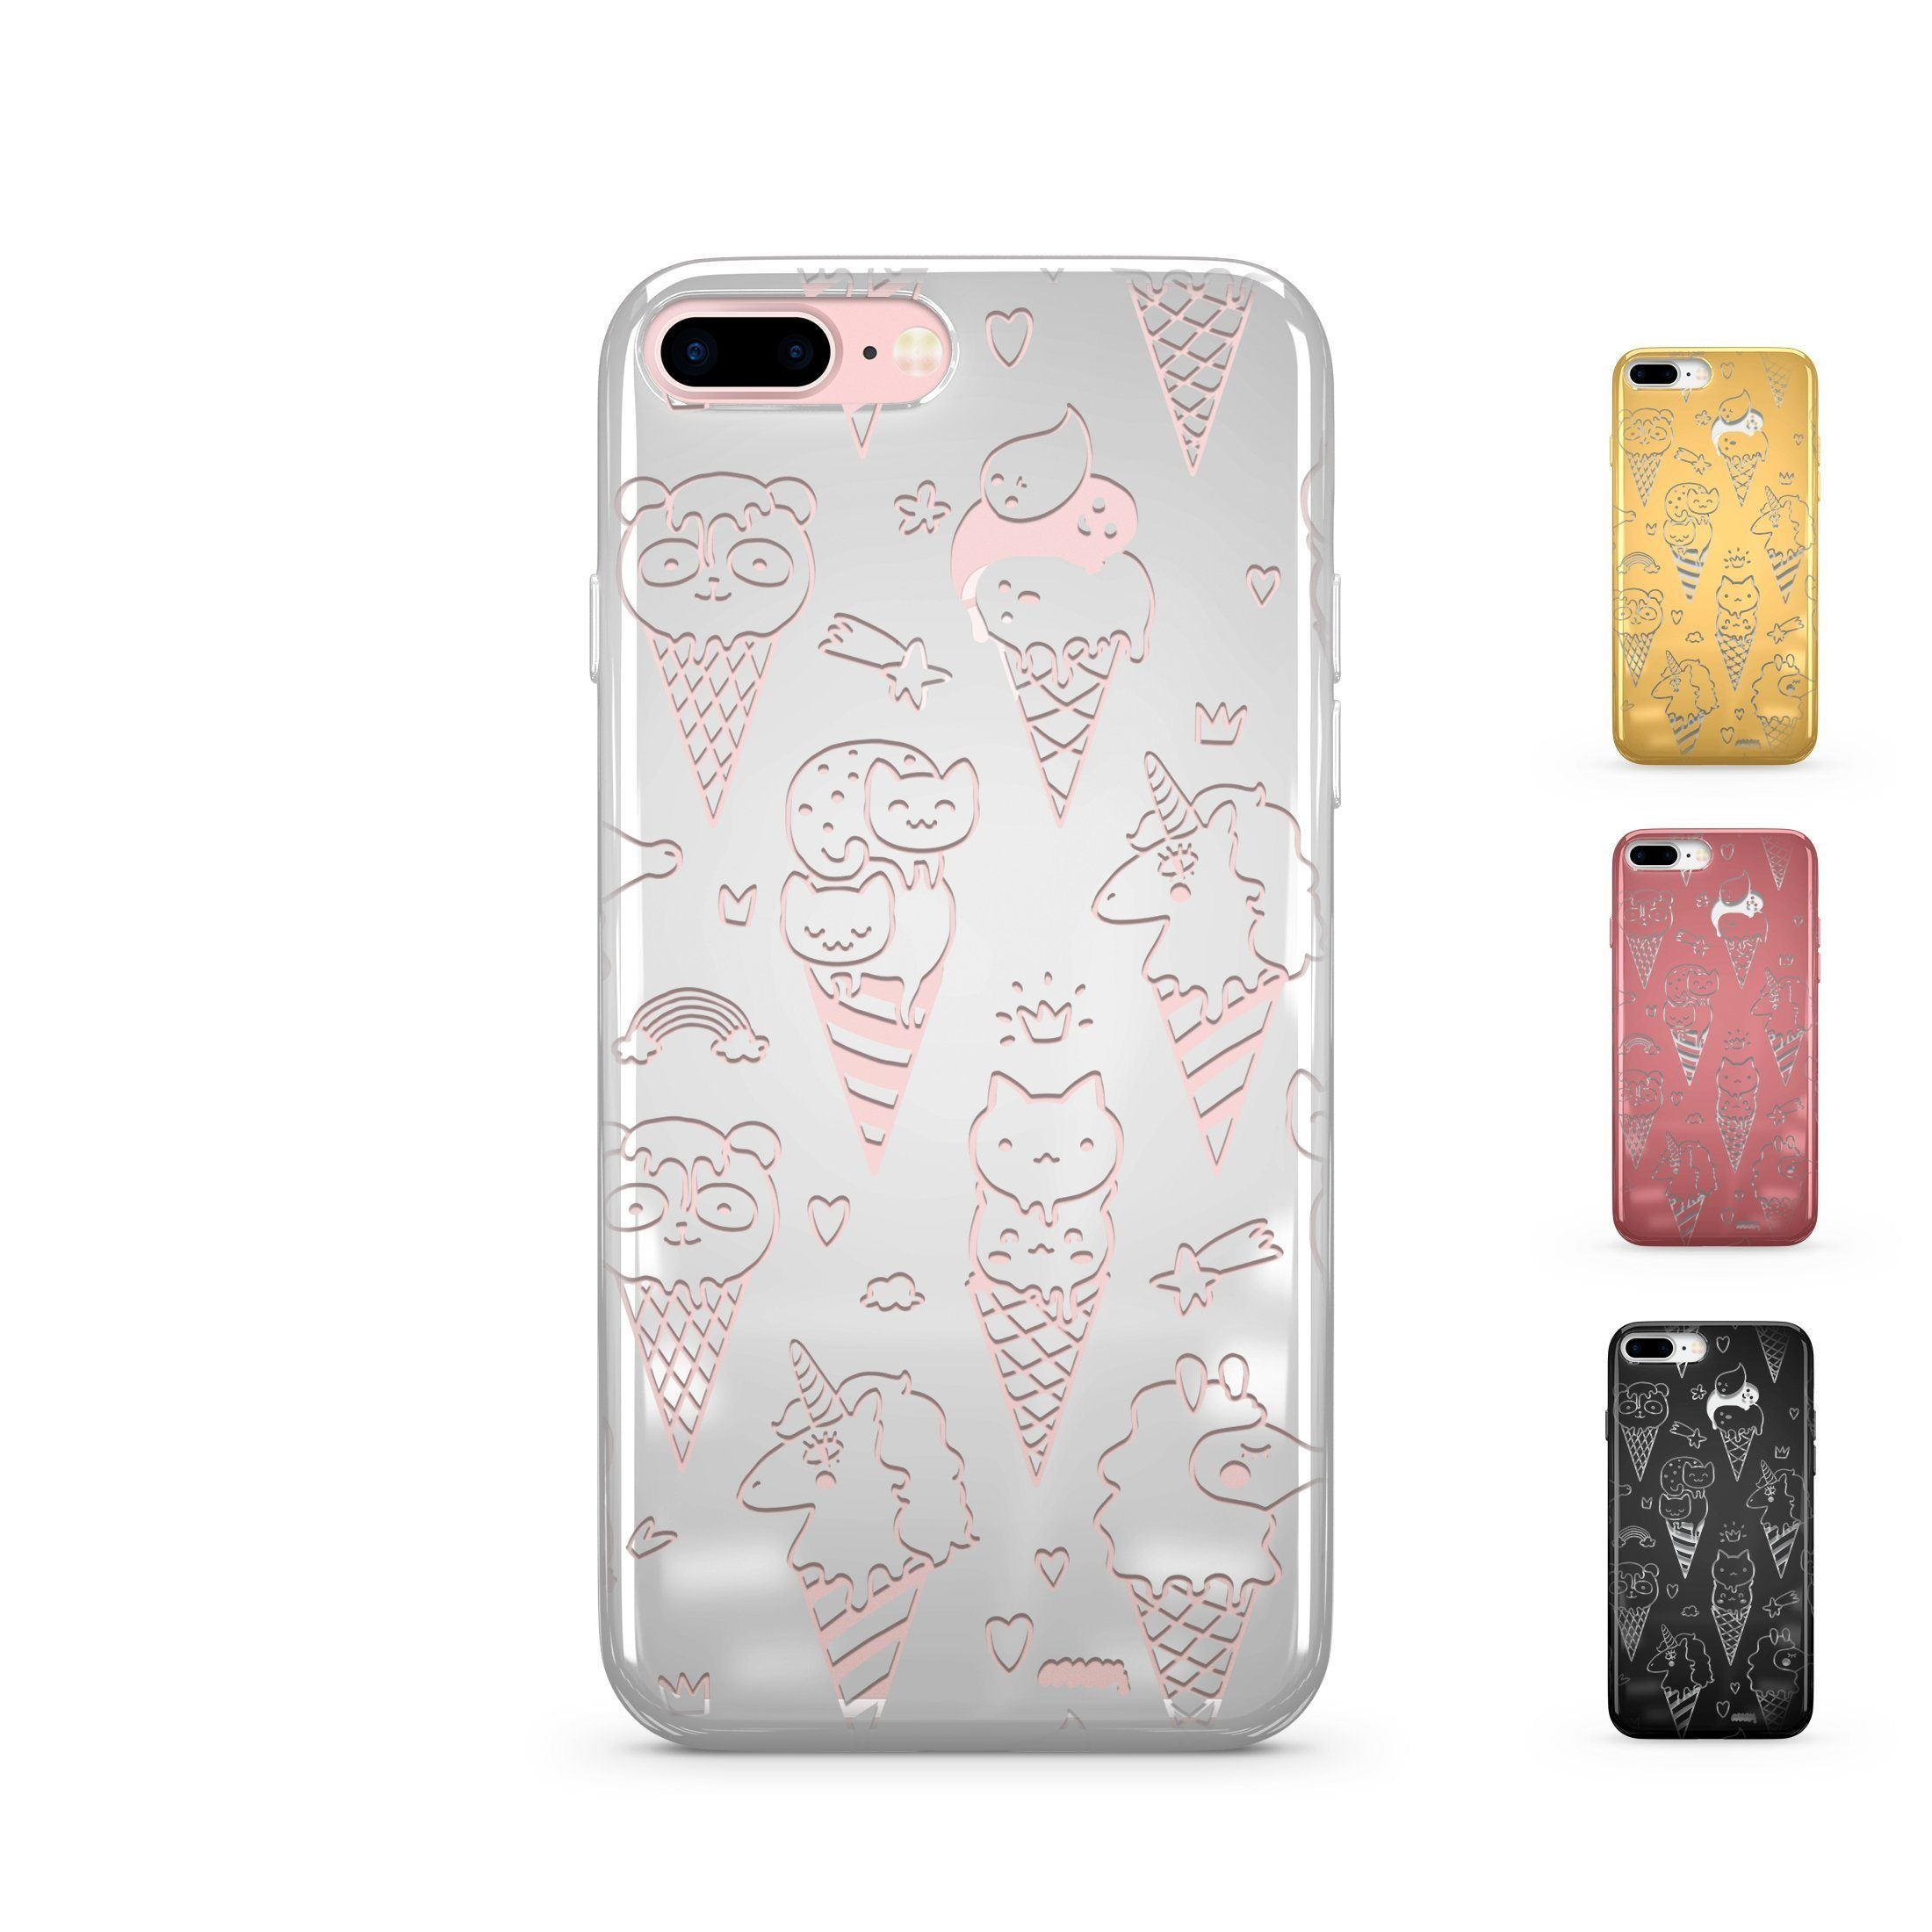 Chrome Shiny TPU Case - Ice Cream Squad